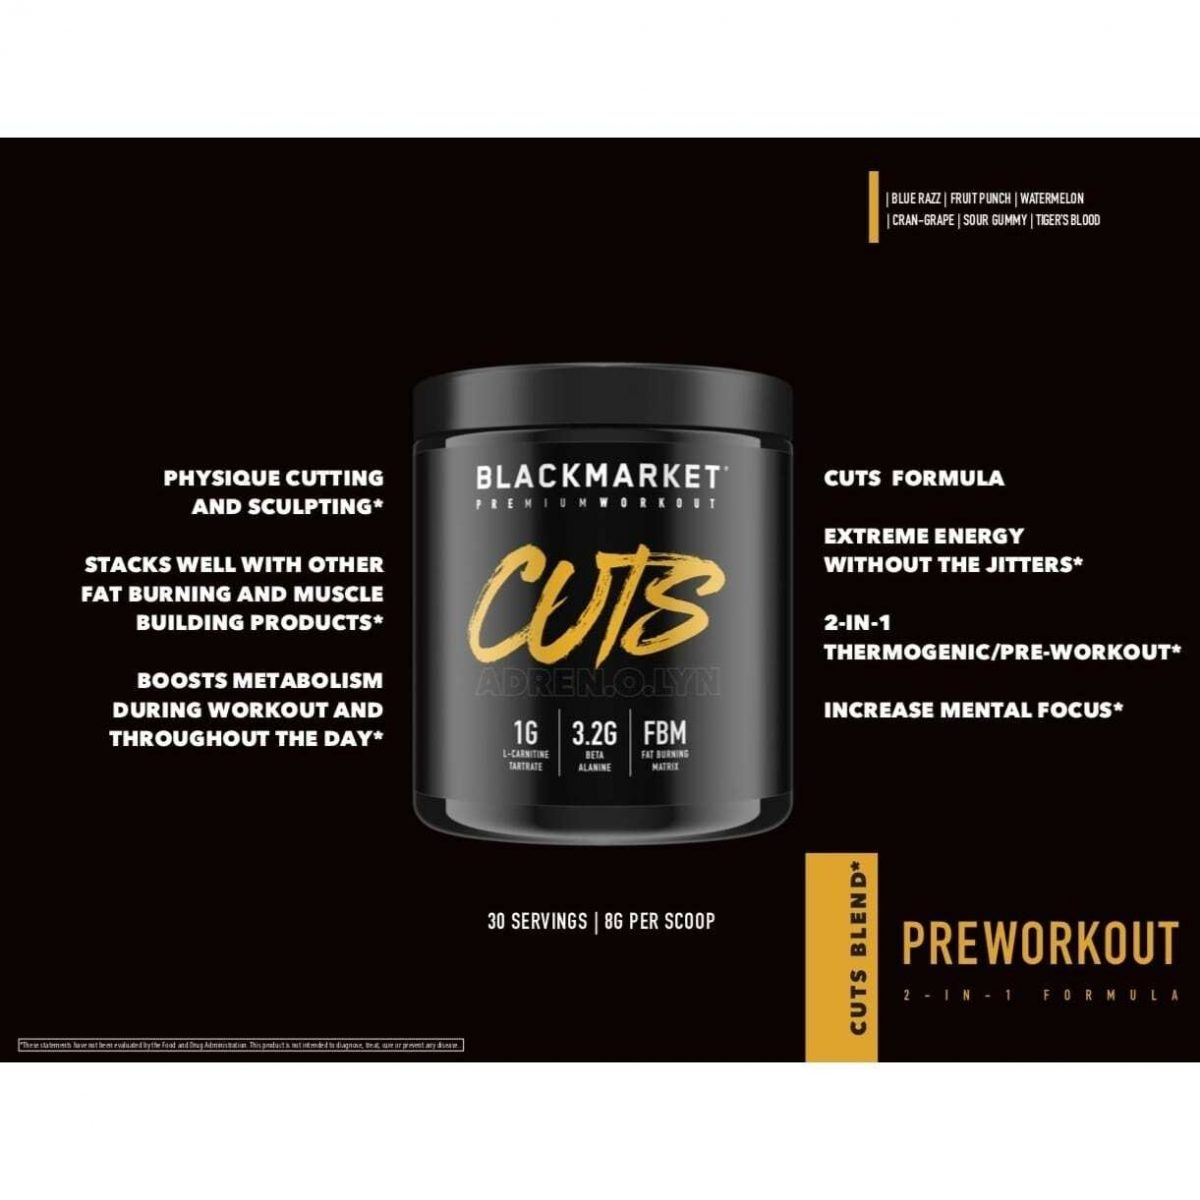 Adrenolyn Cuts - Pre Workout - Tiger's Blood - 30 Servings By Blackmarket Labs-3556